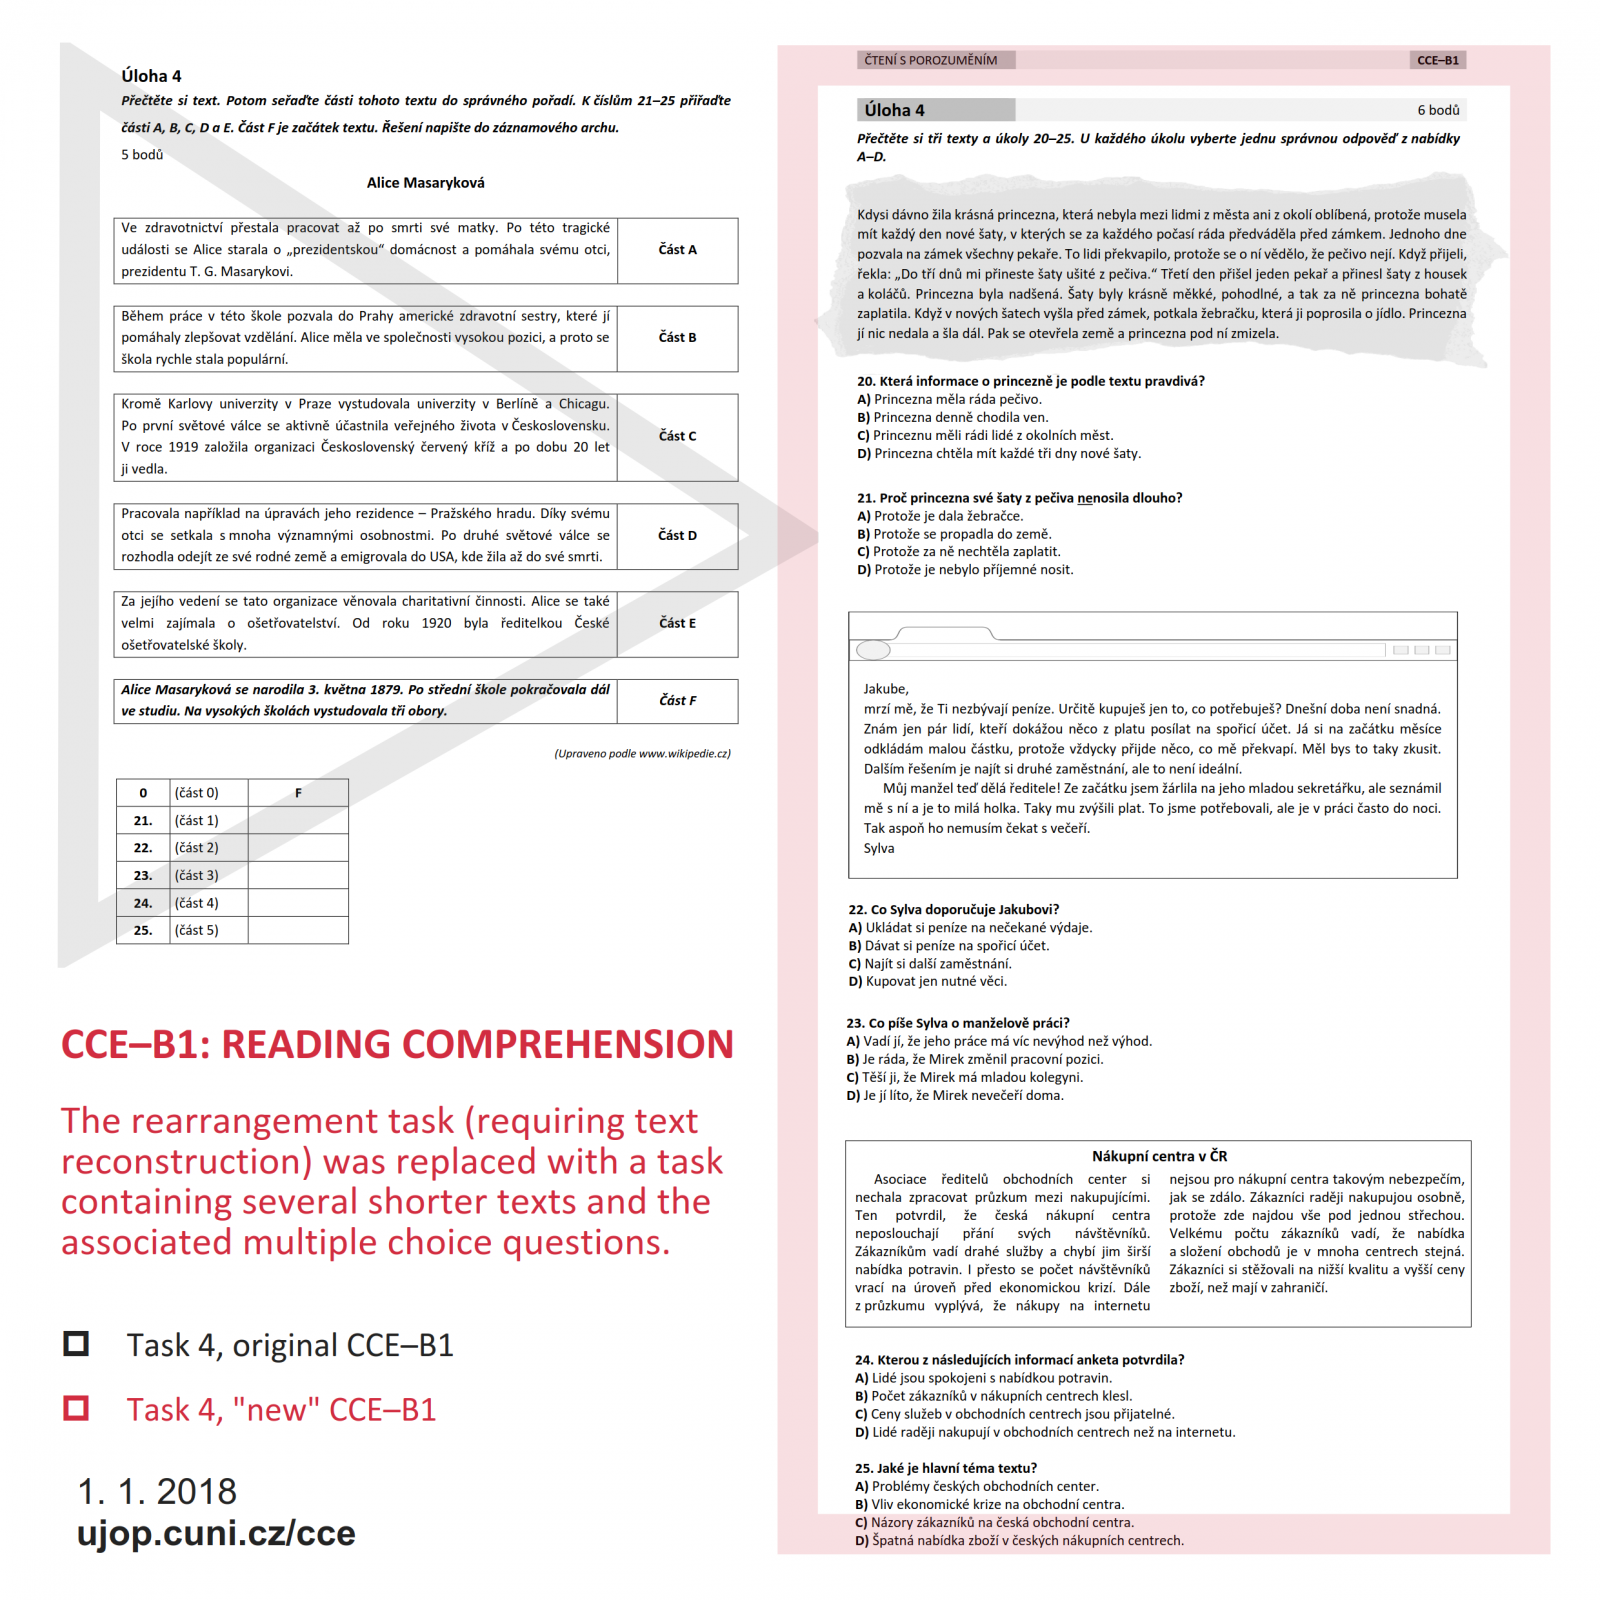 General Information about the New CCE Exam | ILPS CU